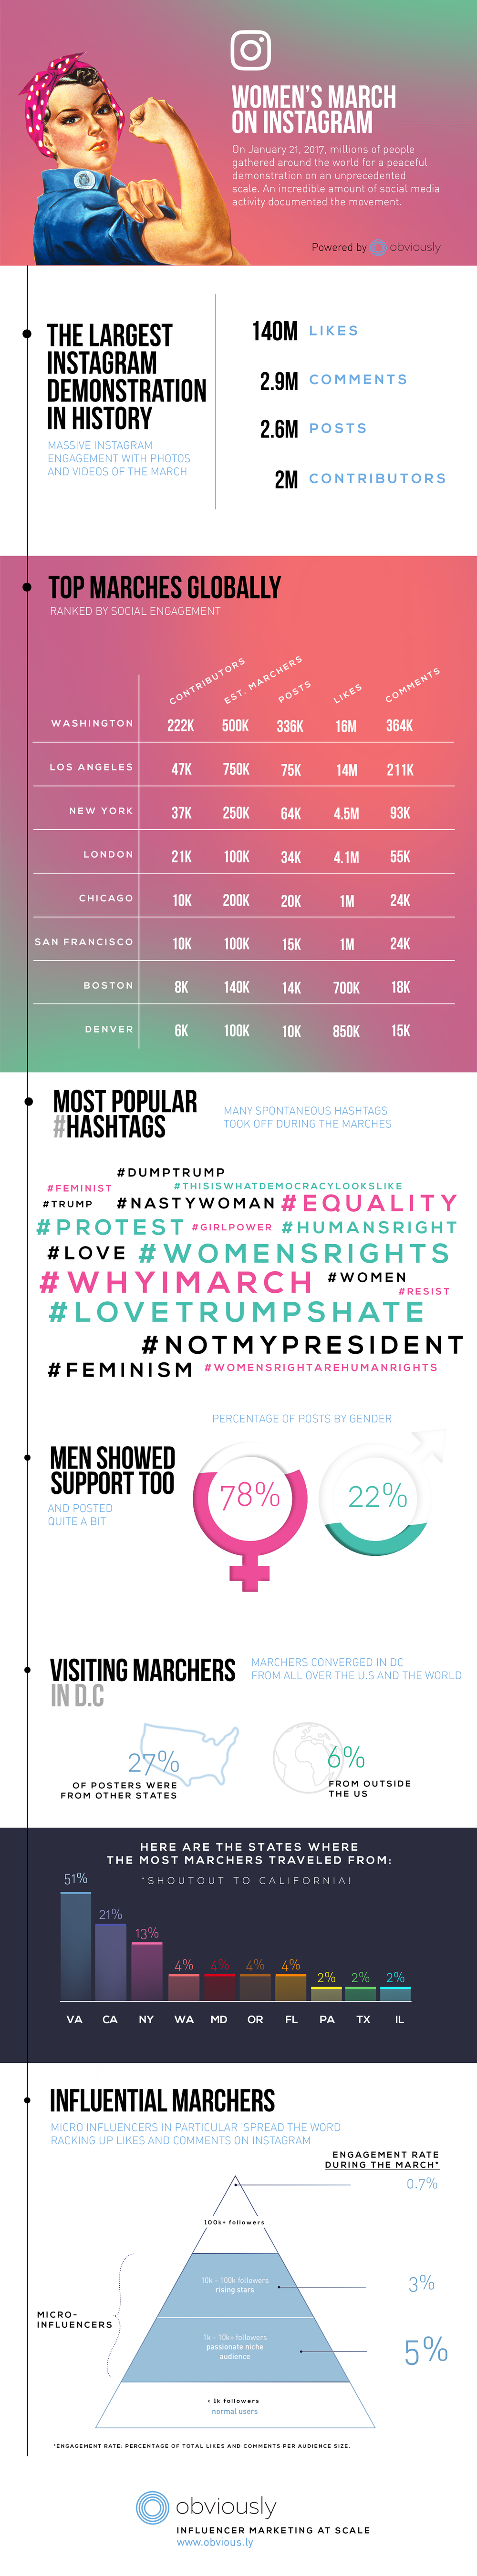 infographic_obviously_womensmarchoninstagram.png